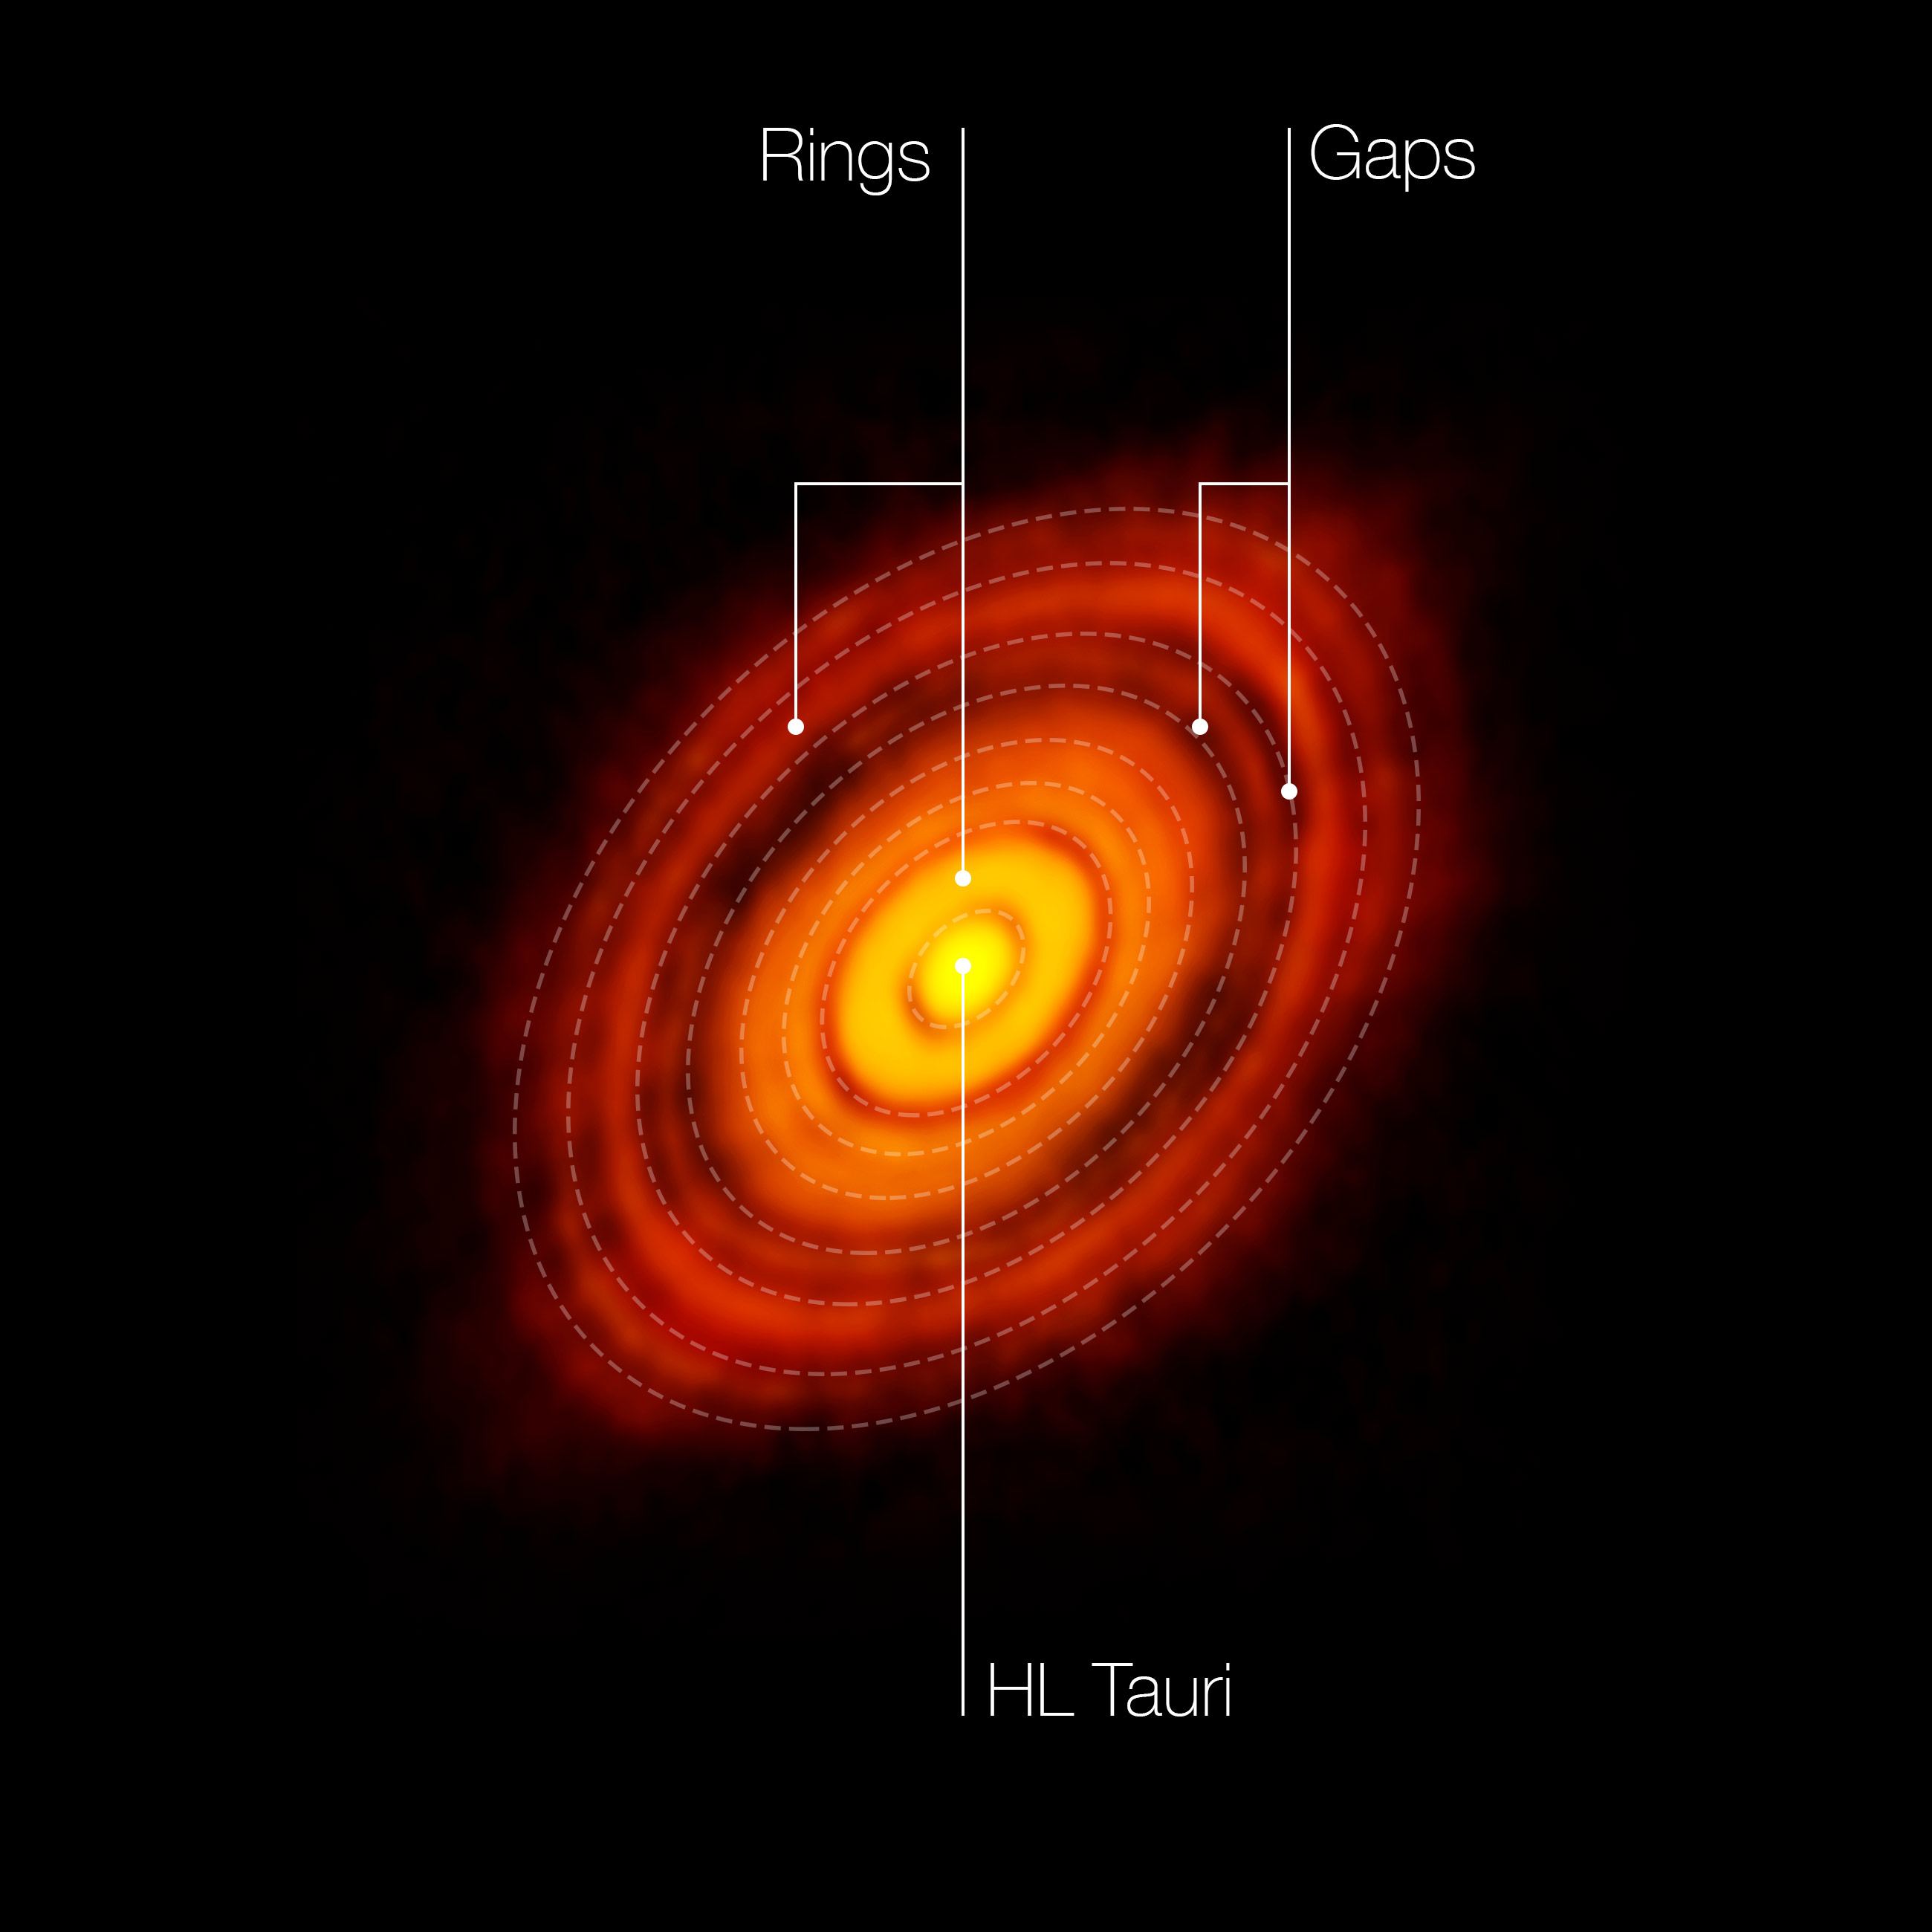 Astrophysicists Examine the Possibility of Planets Forming around HL Tauri